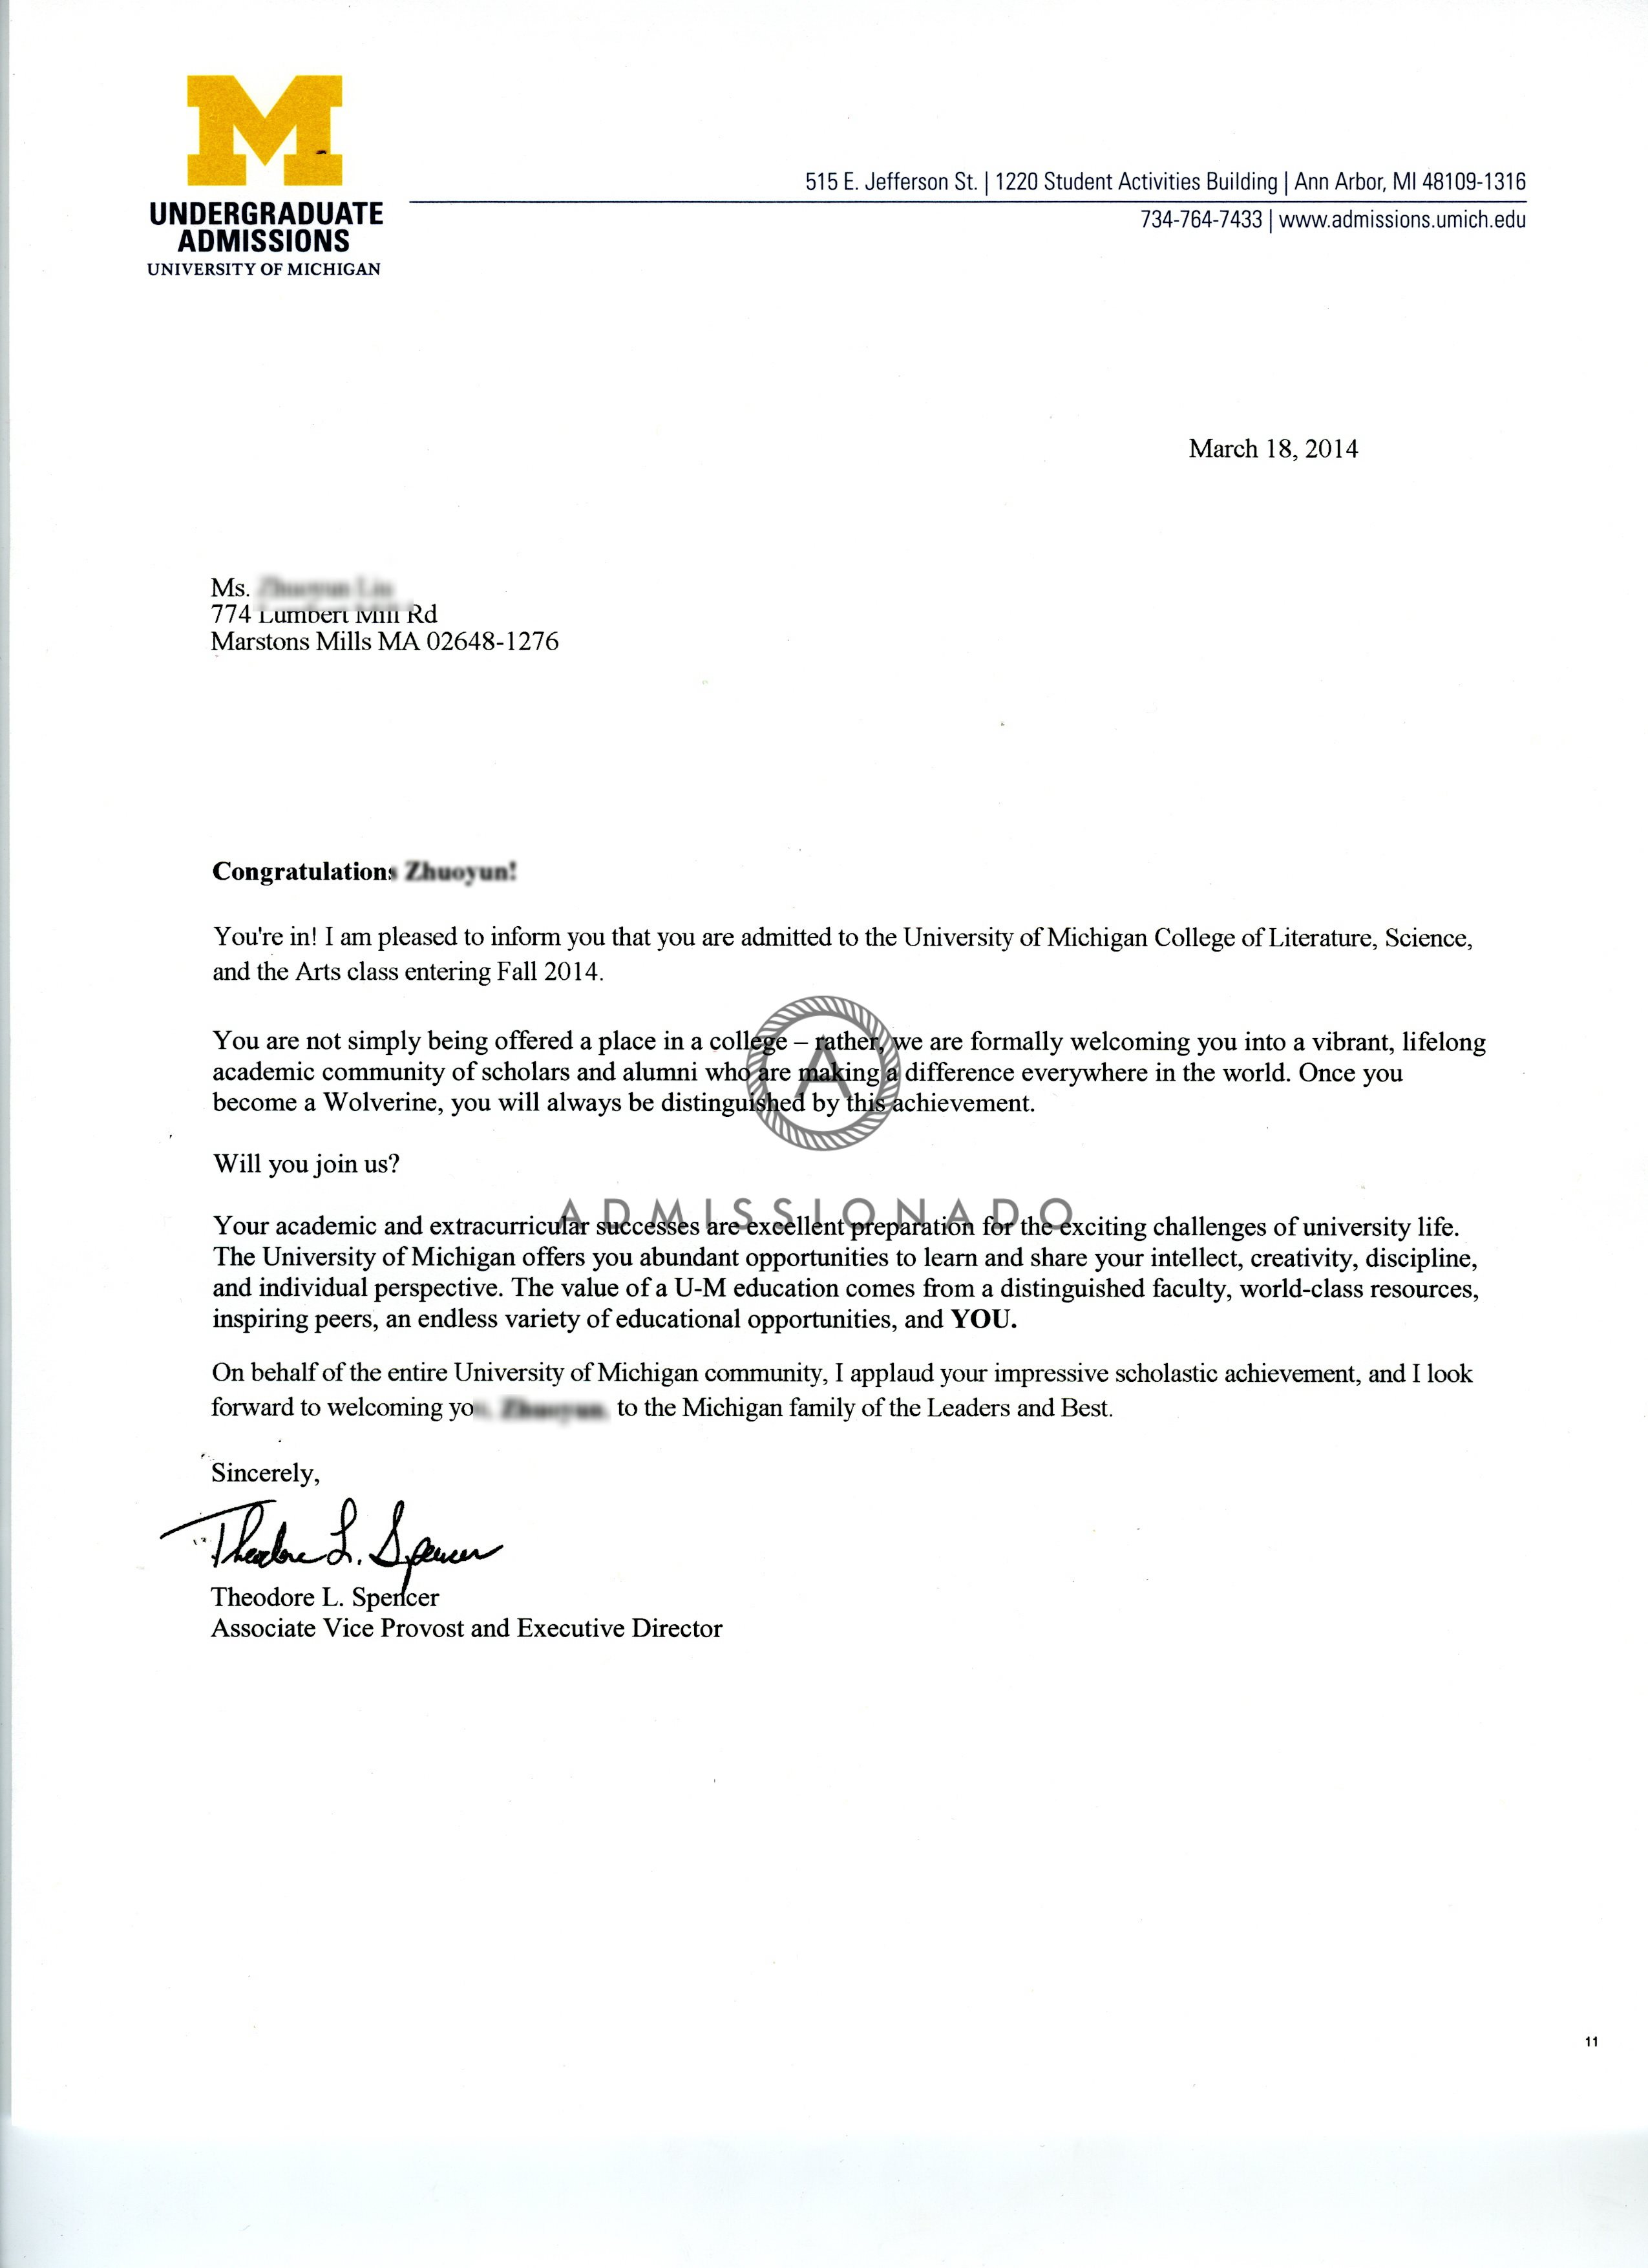 Unv of Michigan acceptane letter